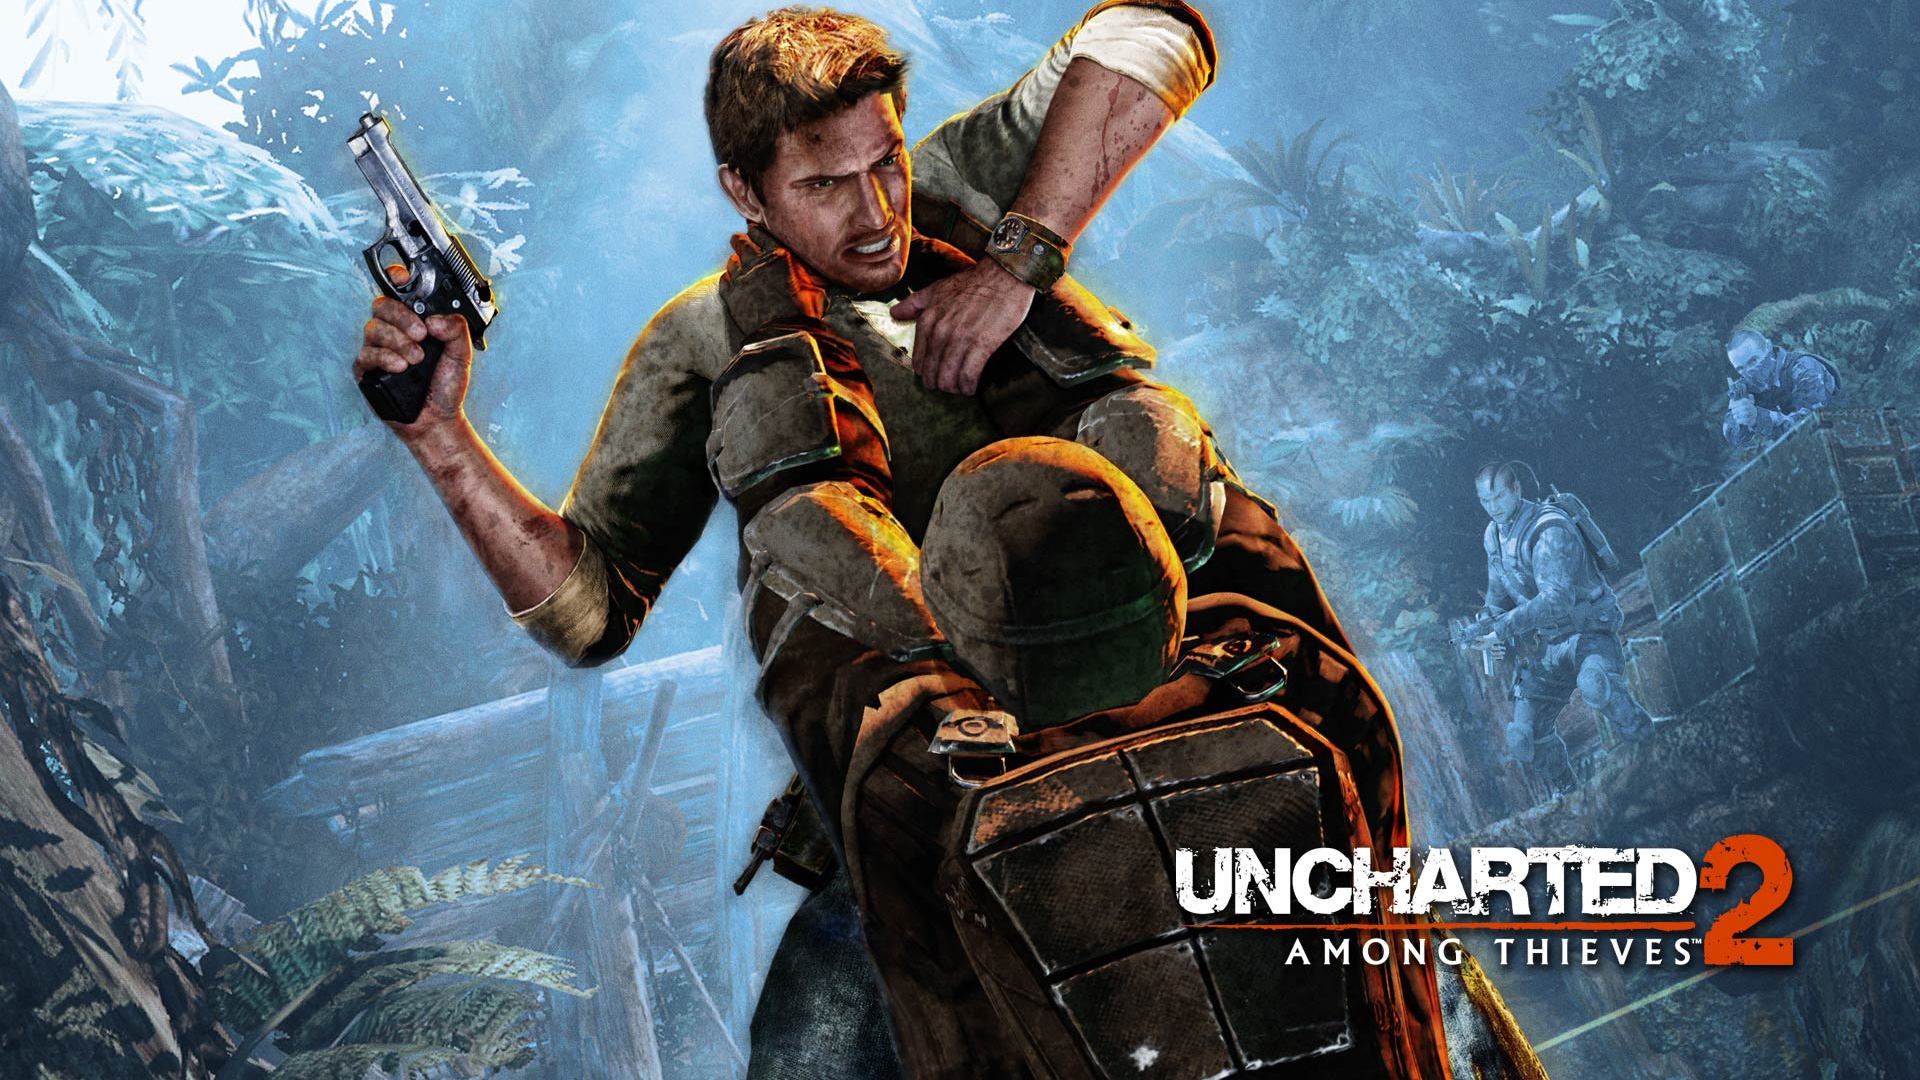 Free Uncharted 2: Among Thieves Wallpaper in 1920x1080